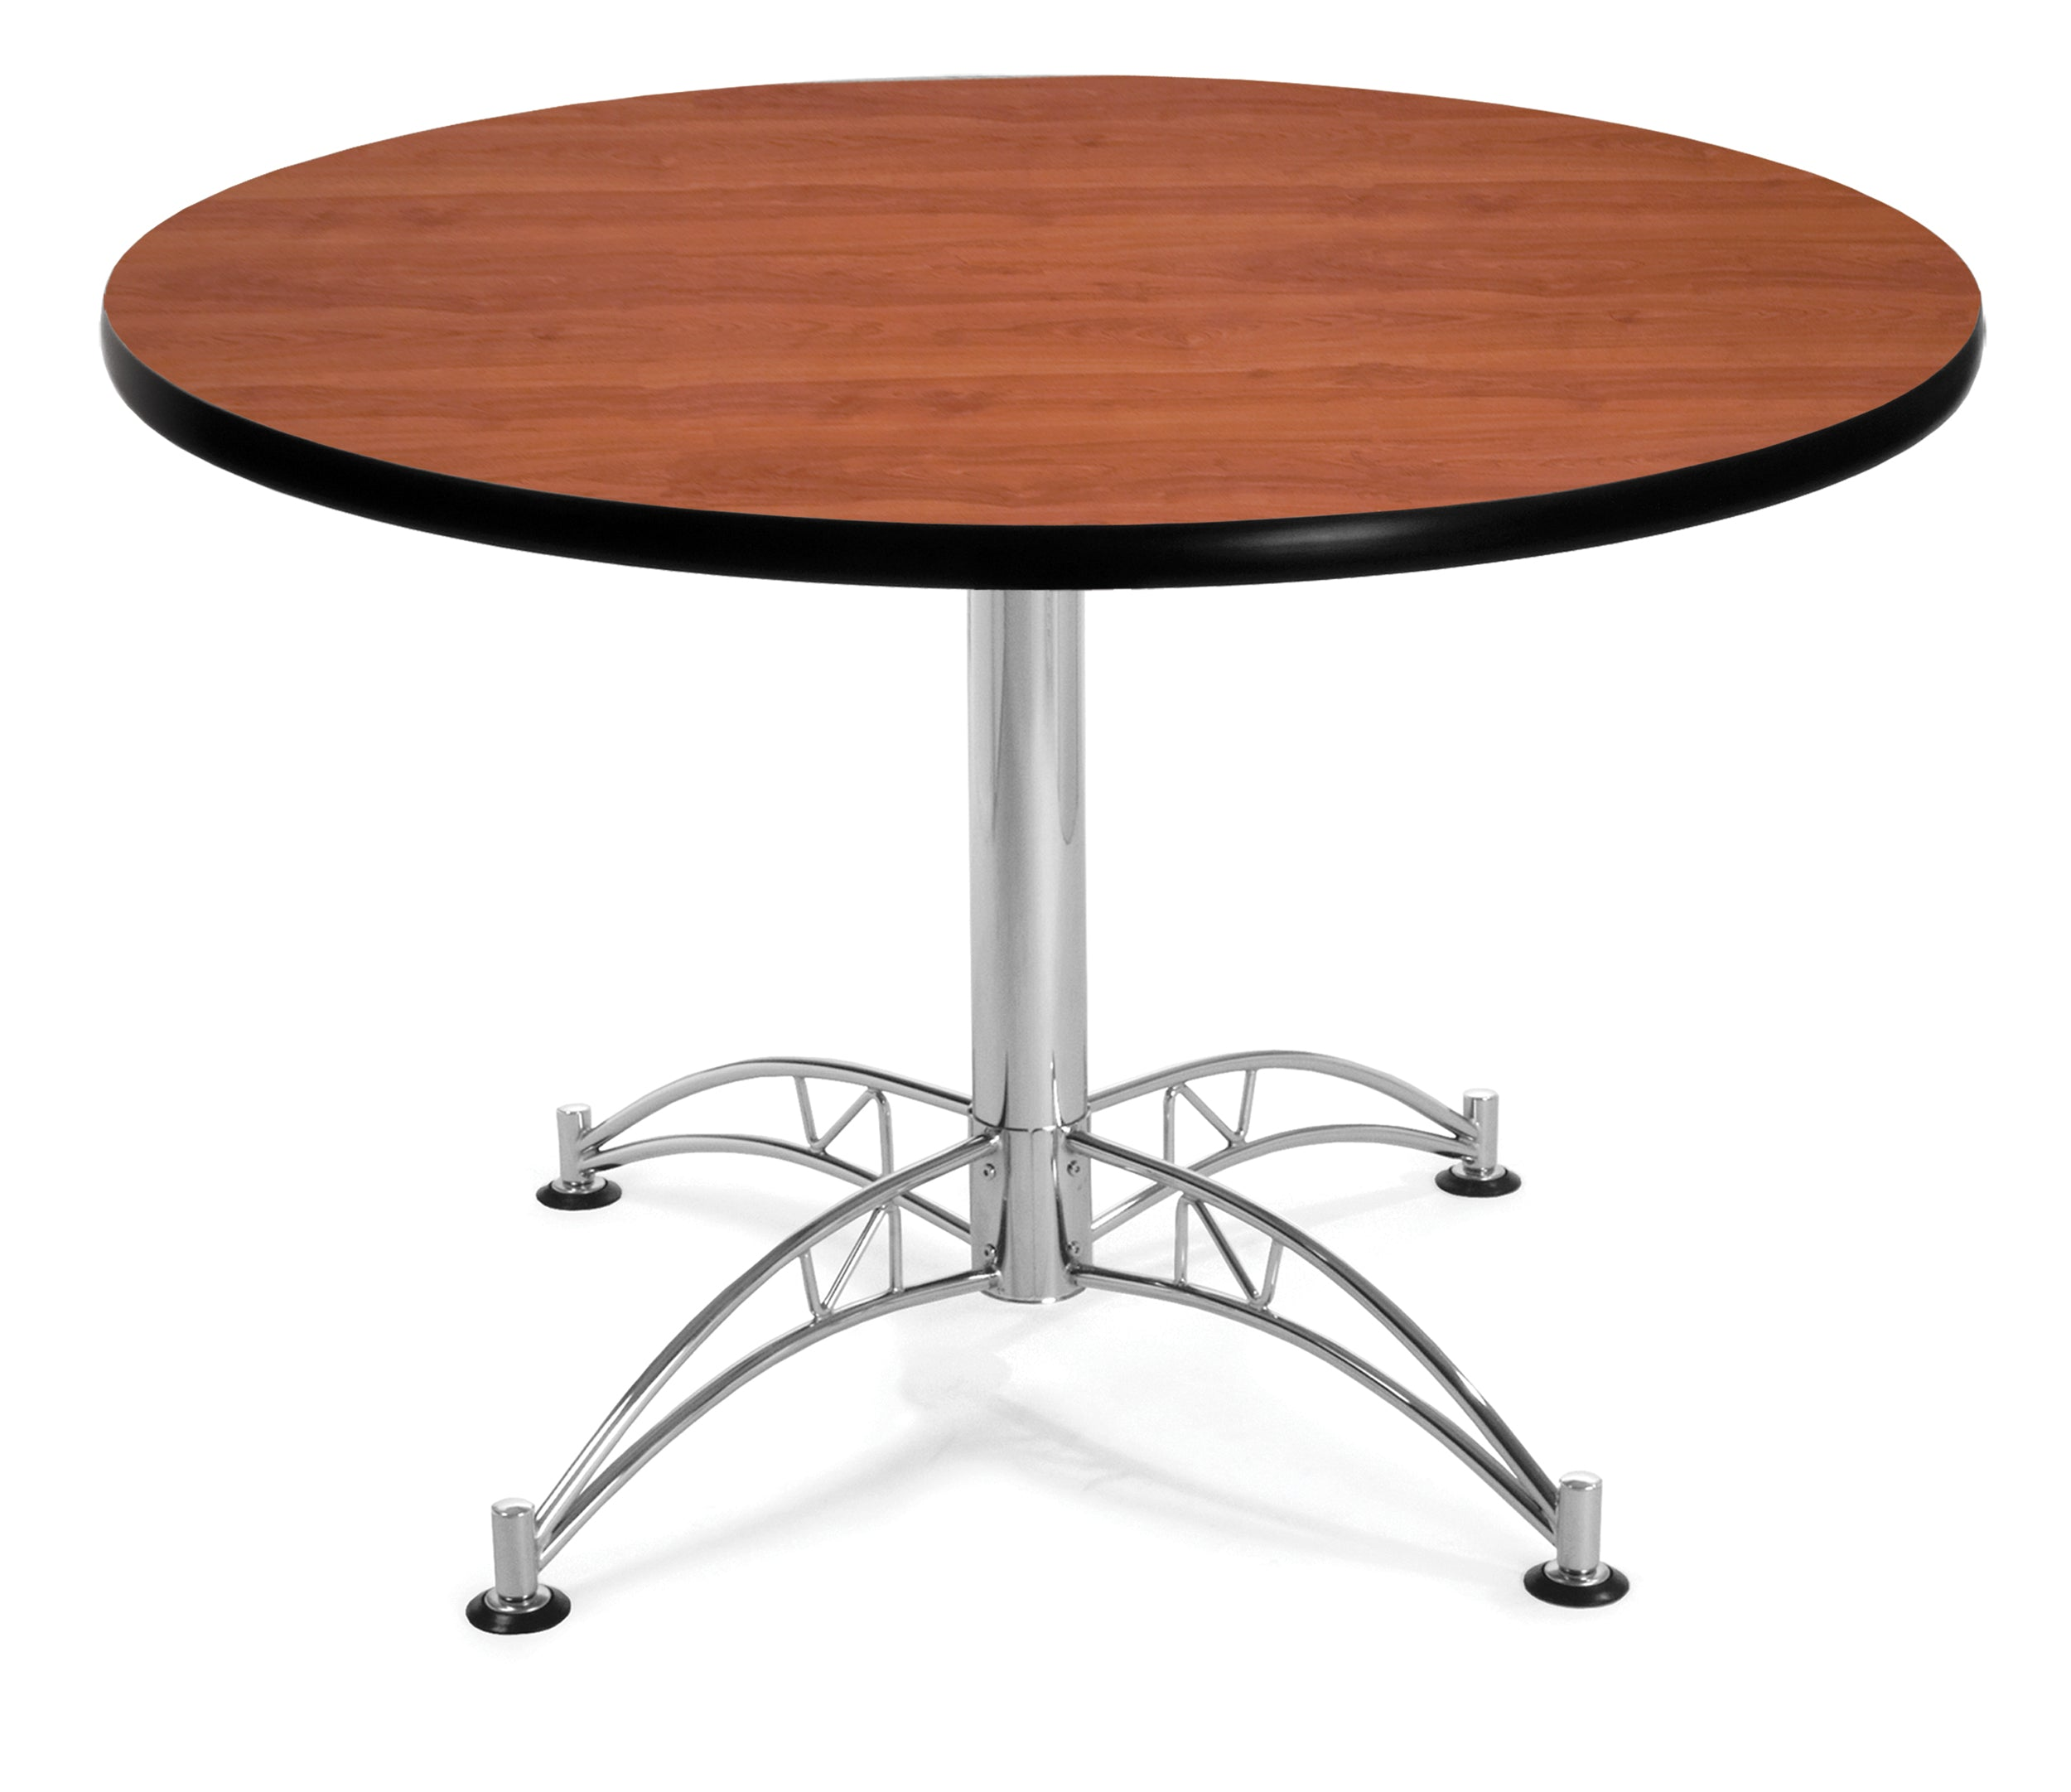 Ofminc Model LT42RD 42 Inch Round Multi-Purpose Table